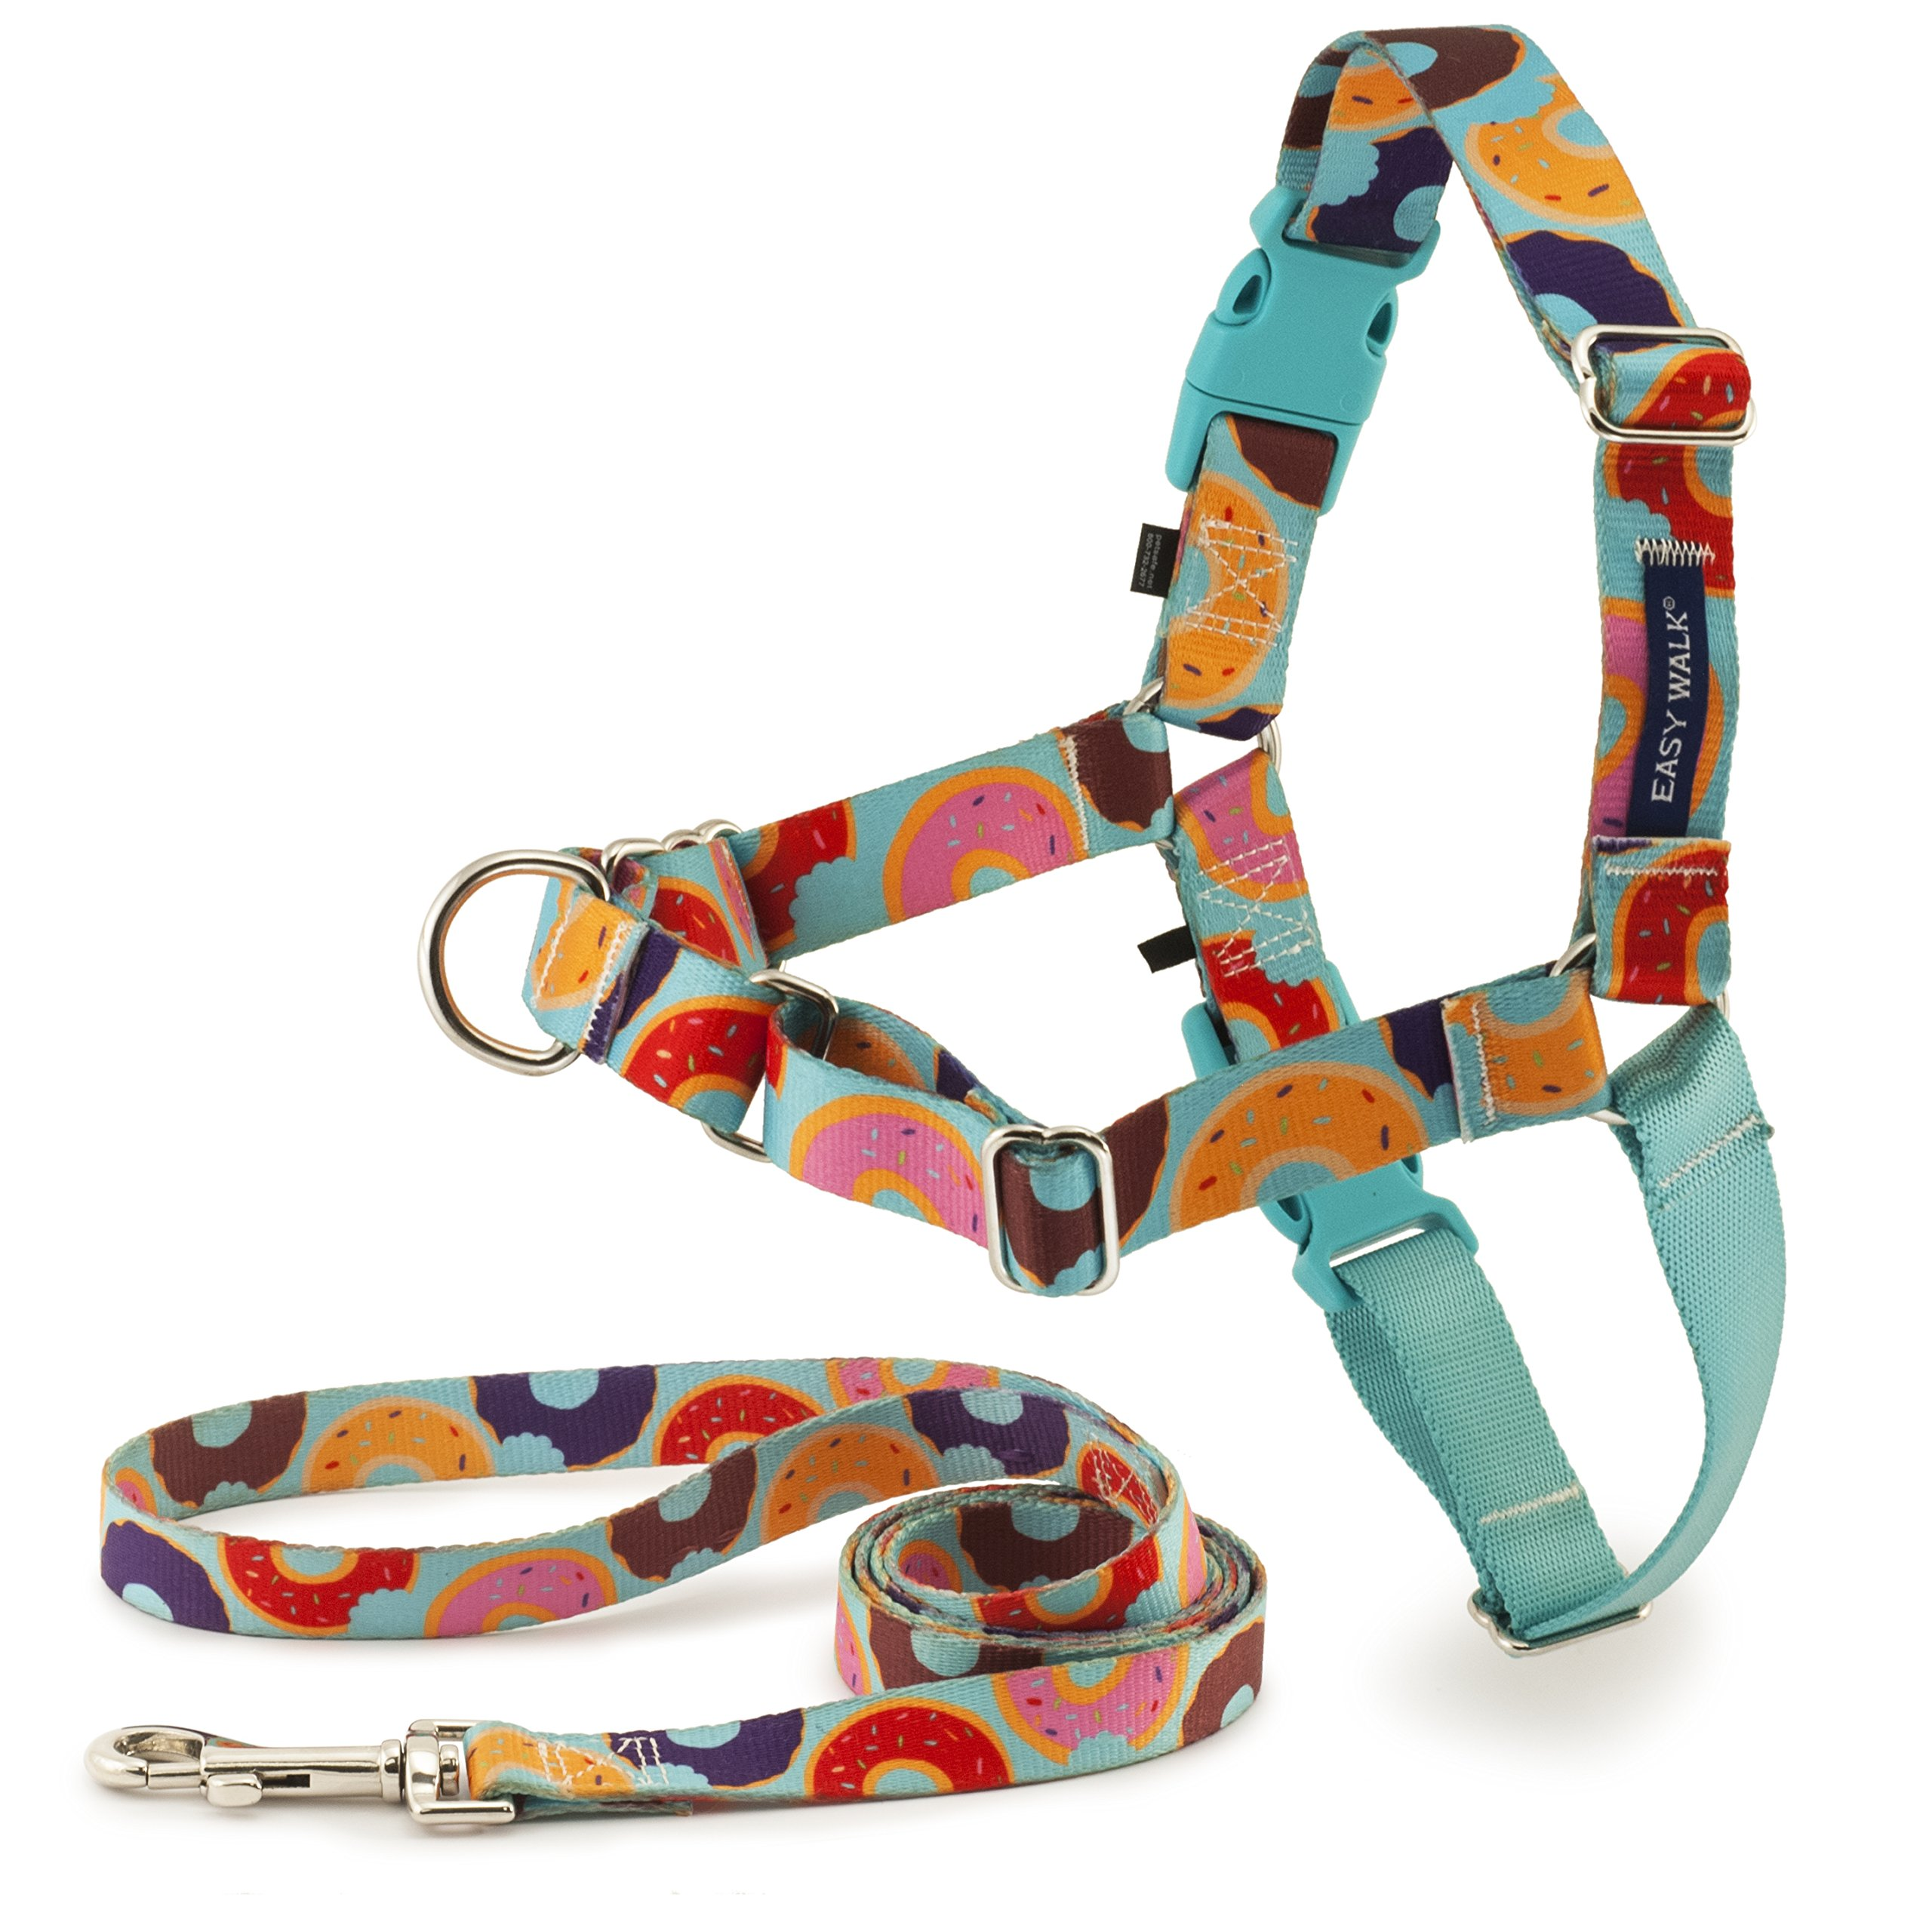 PetSafe EWH-C-HC-M/L-DNT Easy Walk Chic Harness, Medium/Large, Donuts by PetSafe (Image #1)